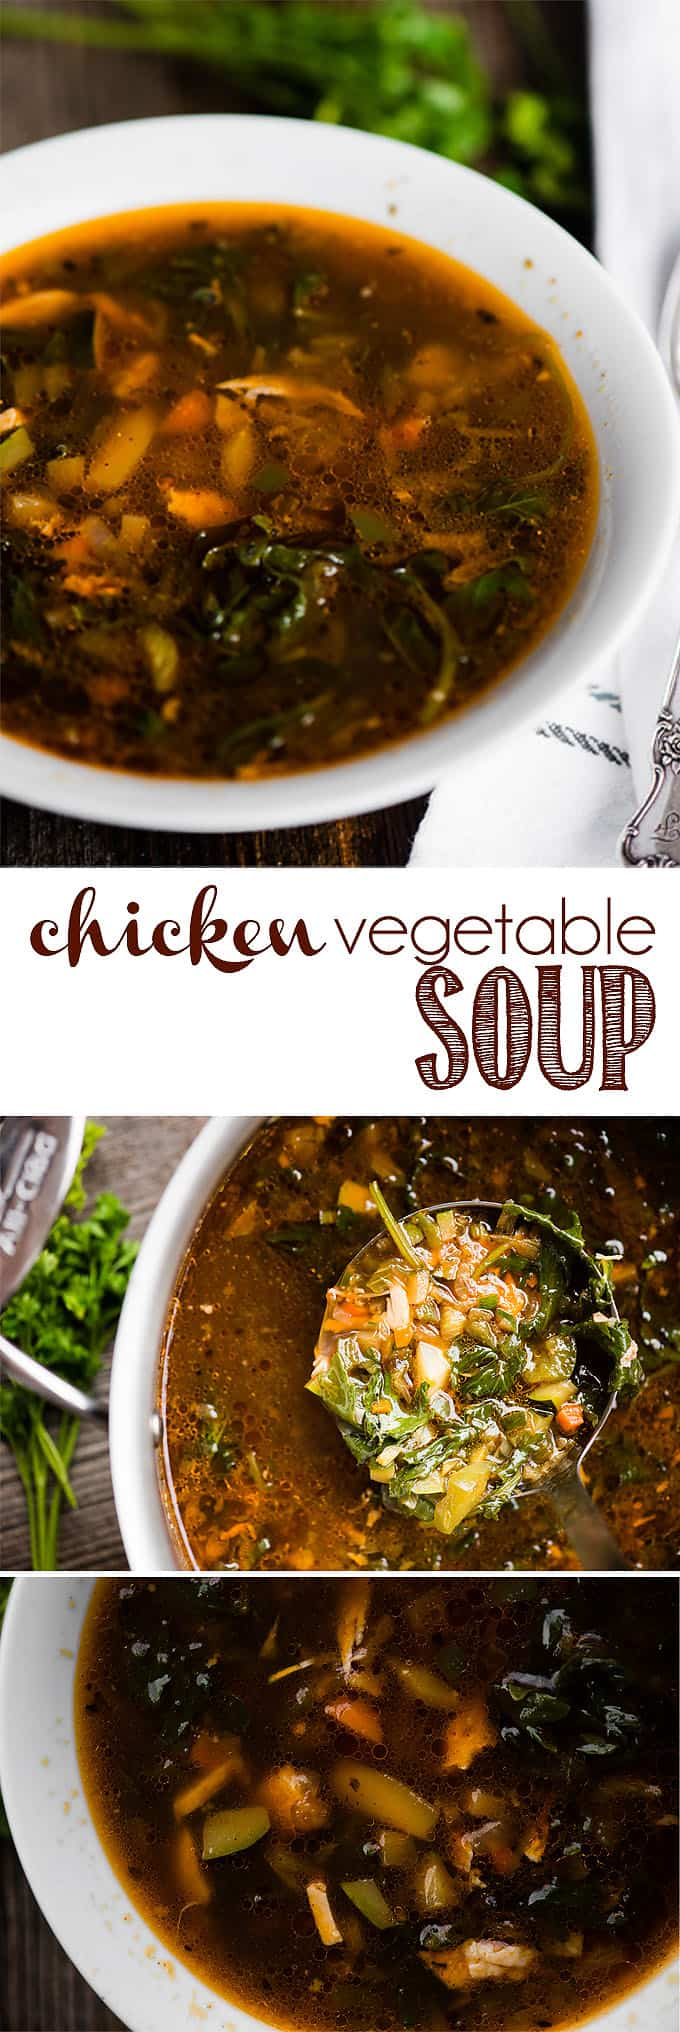 Chicken Vegetable Soup, made with homemade chicken broth and loaded with healthy veggies, is not only a delicious and satisfying meal, but it's nutritious. What's better when you're not feeling well than a homemade chicken soup? Feed your body and soul with this nourishing and comforting bowl of healthy soup! #chicken #soup #chickensoup #chickenvegetablesoup #homemade #homemadesoup